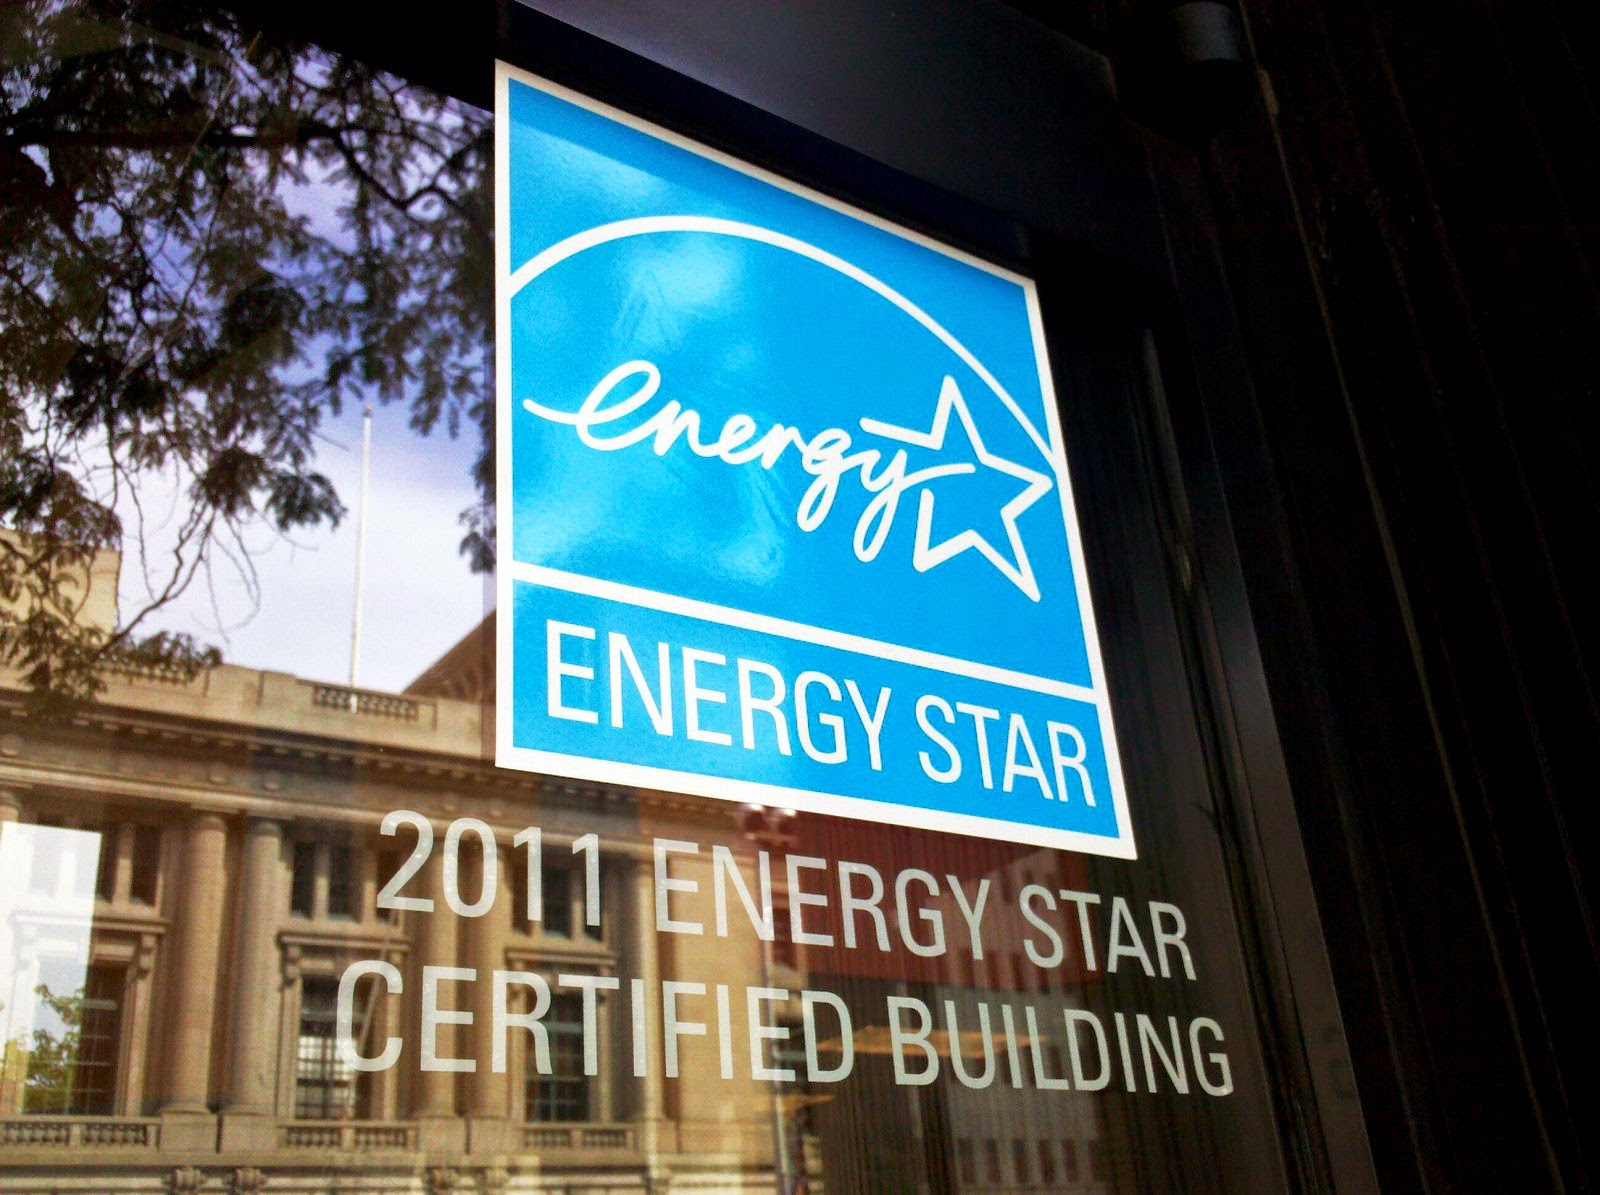 EPA Announces Top 25 US Cities with the Most Energy Star Buildings in 2014